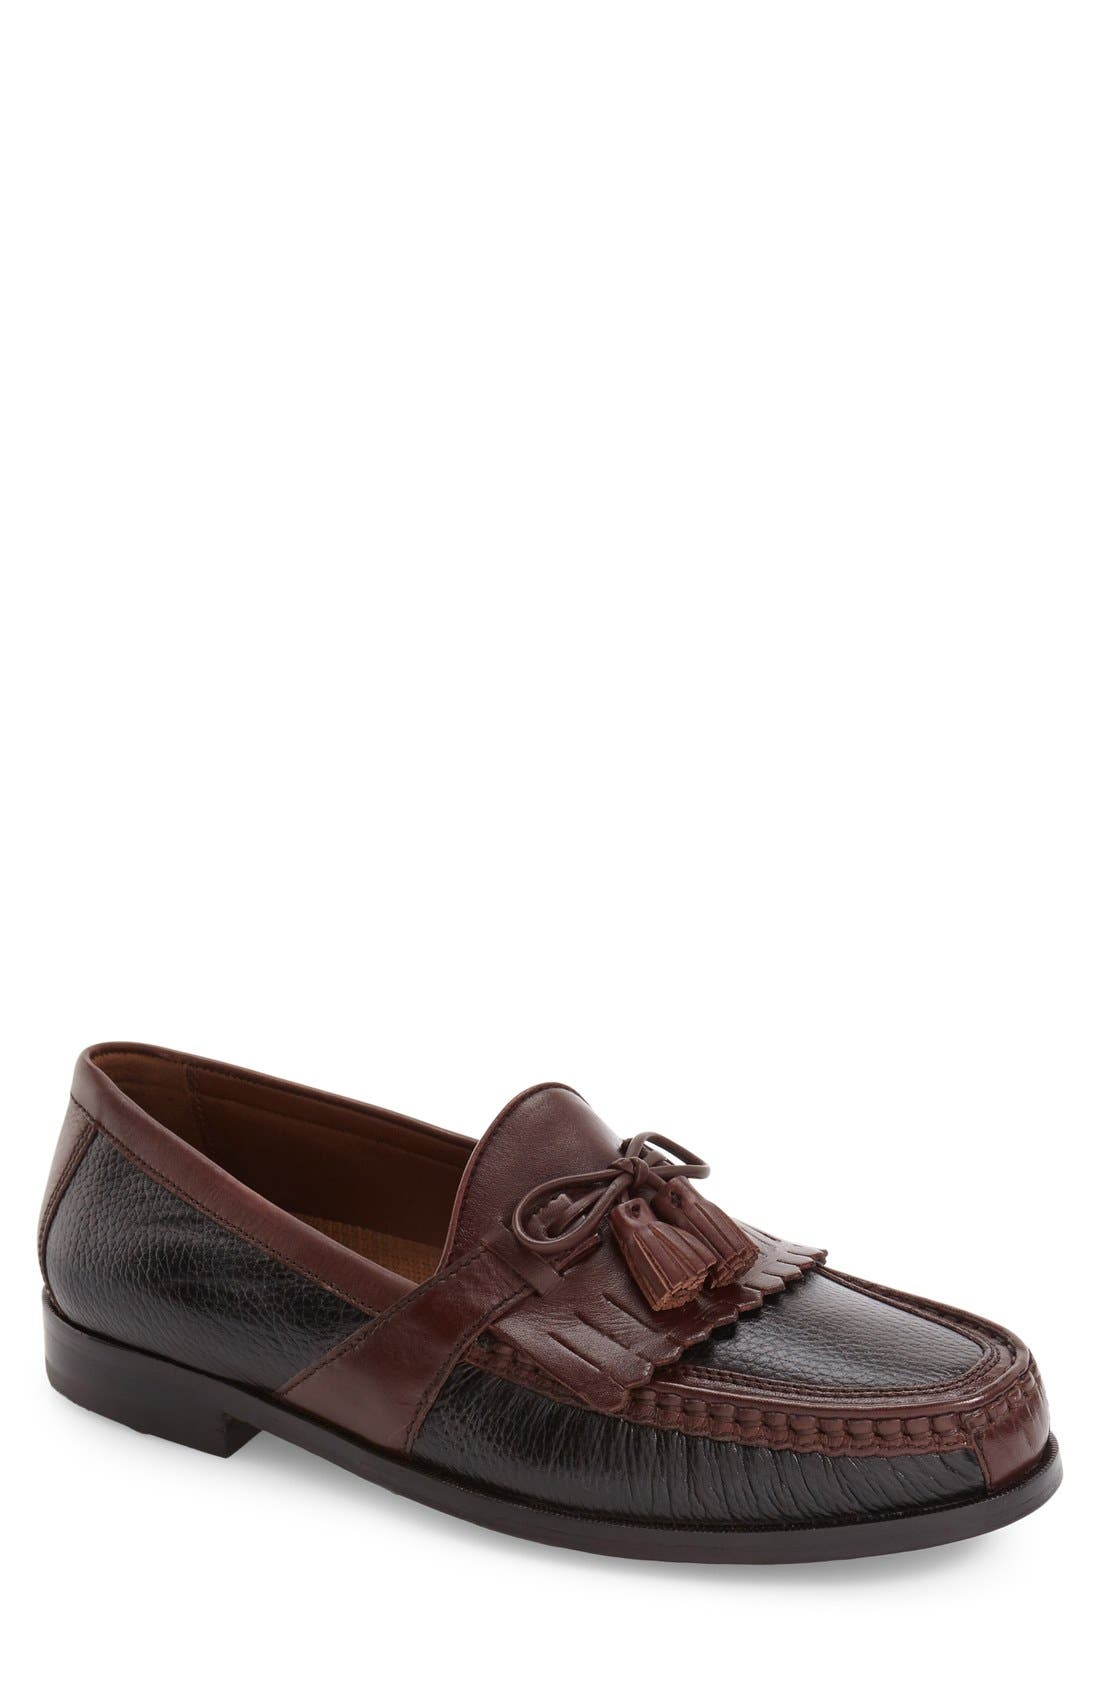 Main Image - Johnston & Murphy 'Aragon II' Loafer